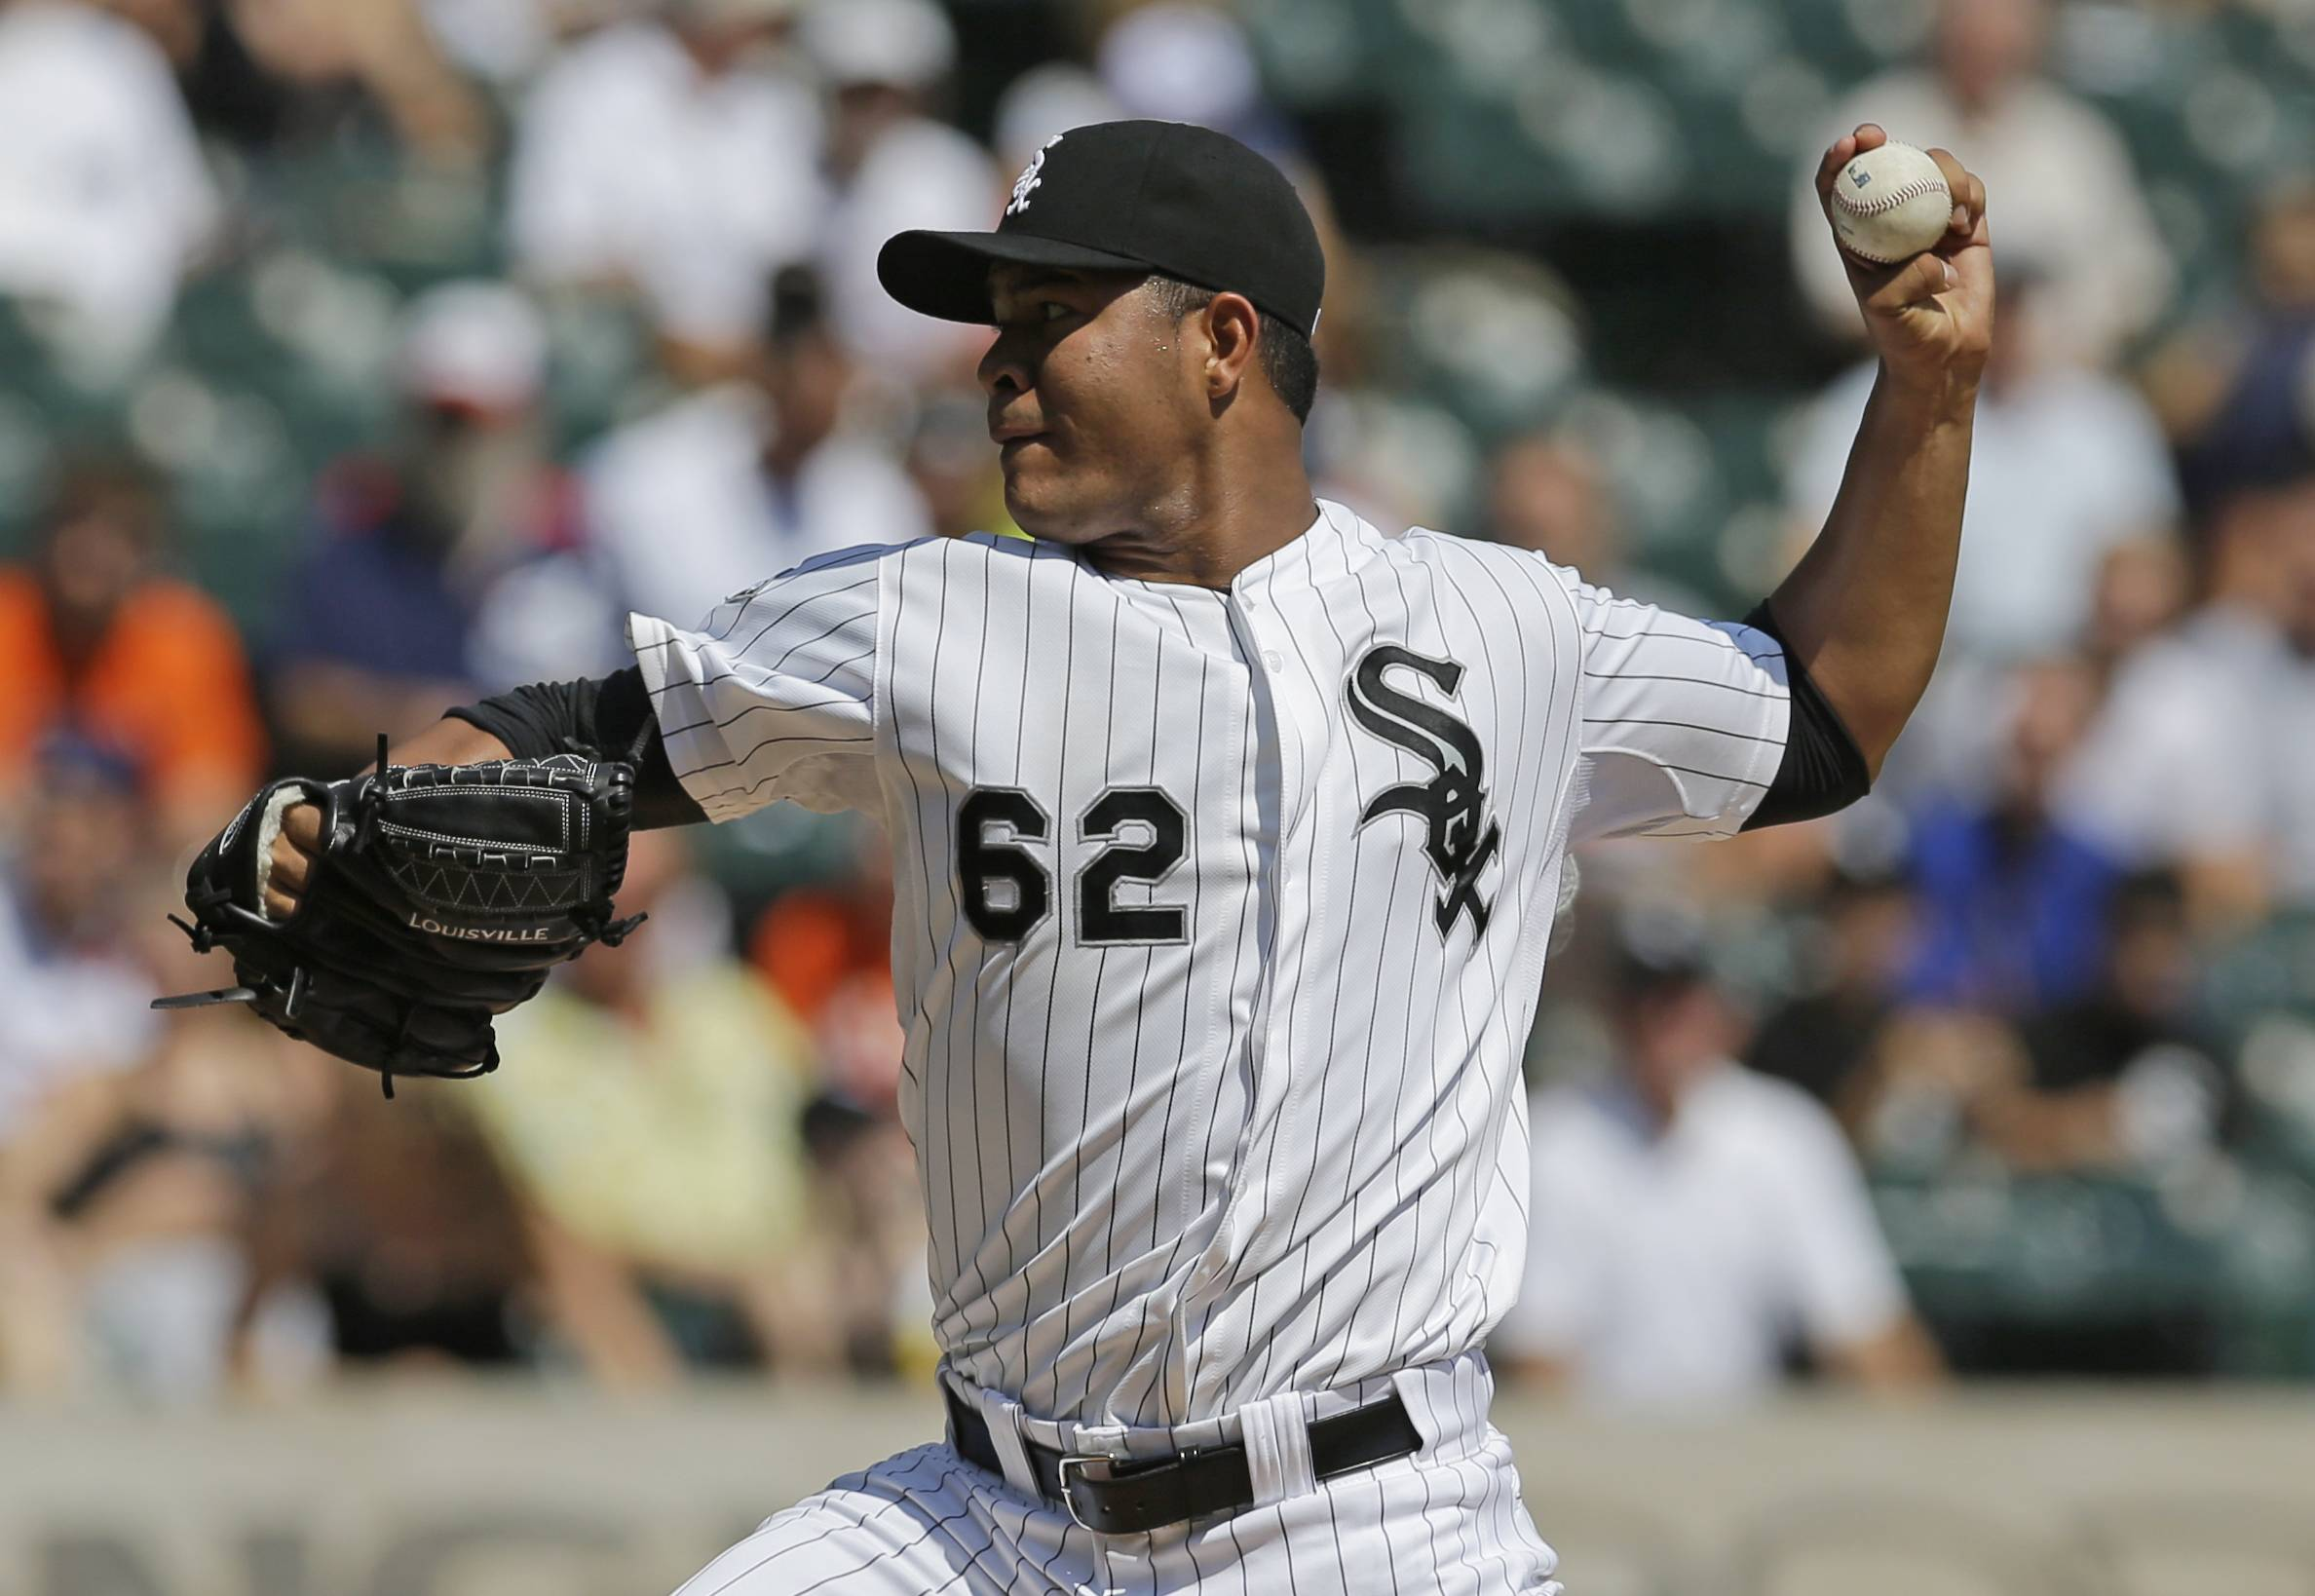 White Sox starter Jose Quintana throws against the Detroit Tigers during the first inning of a baseball game in Chicago, Sunday, Aug. 31, 2014.